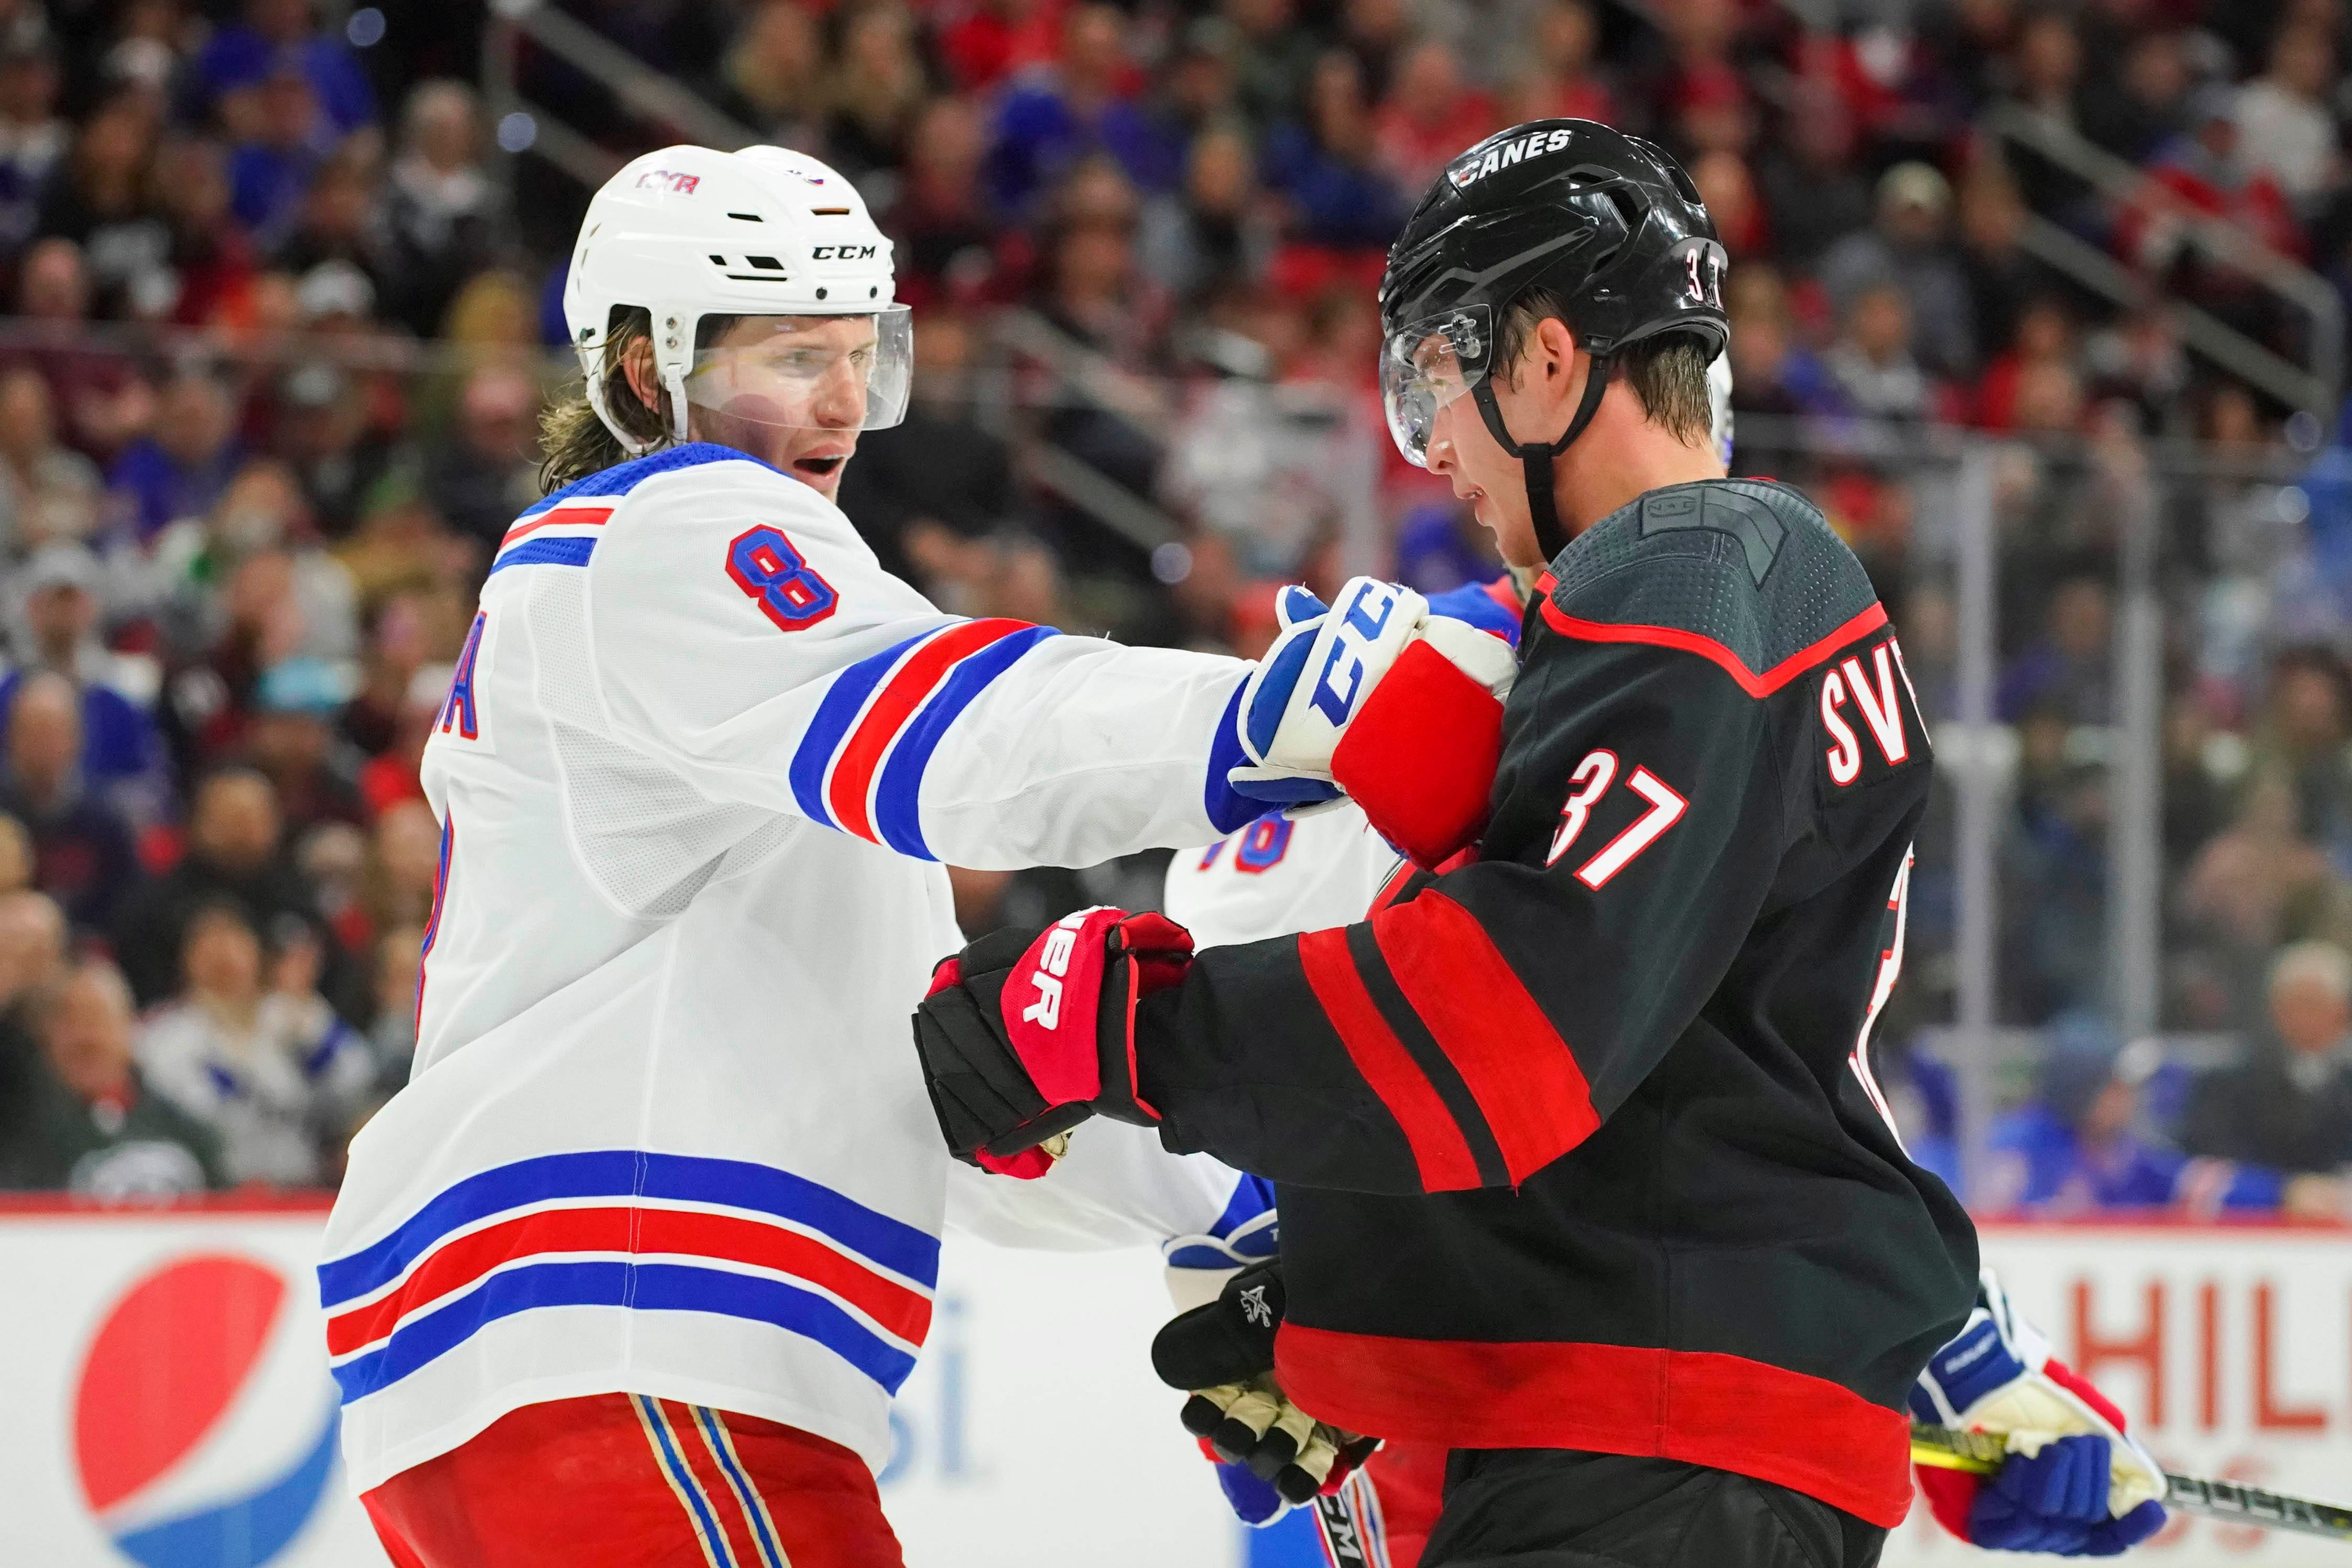 New York Rangers Vs Carolina Hurricanes – NHL Game Day Preview: 08.03.2020